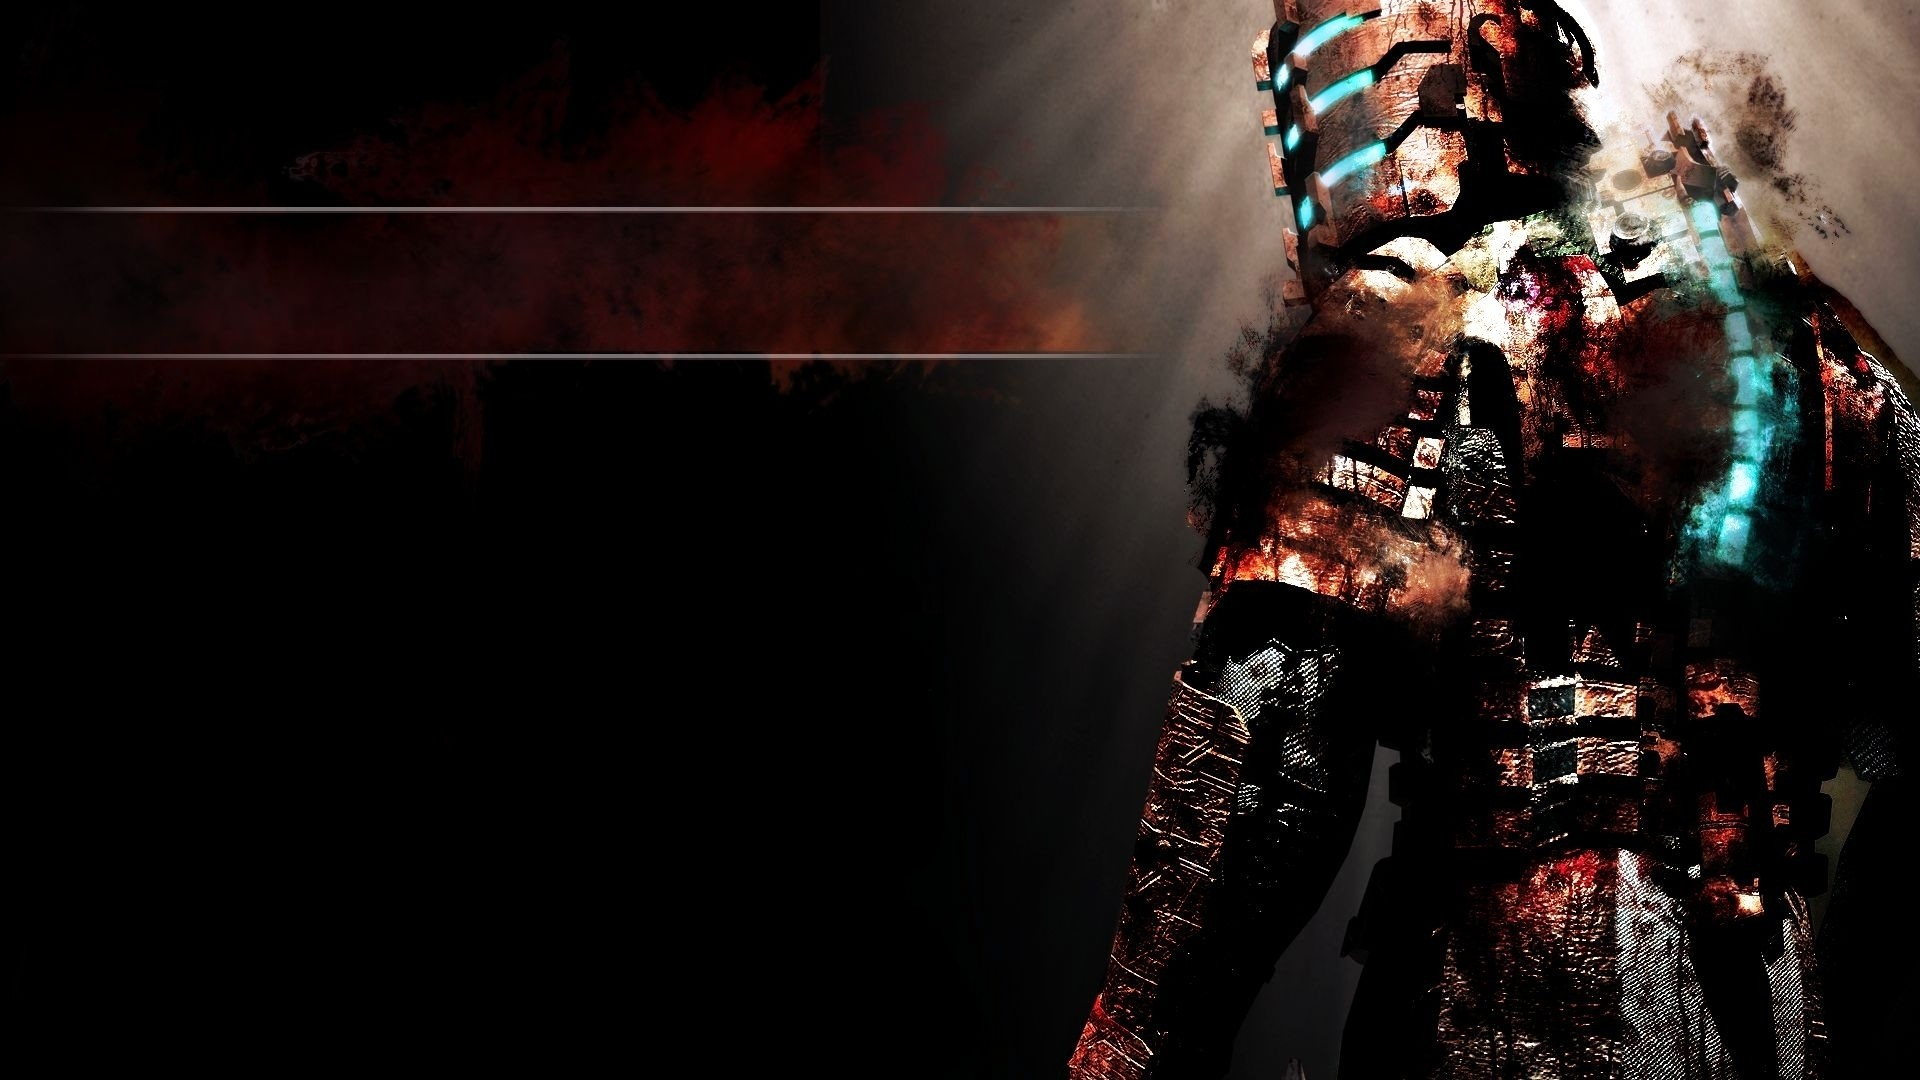 gore dead space badass game HD Wallpaper Space amp Planets 962271